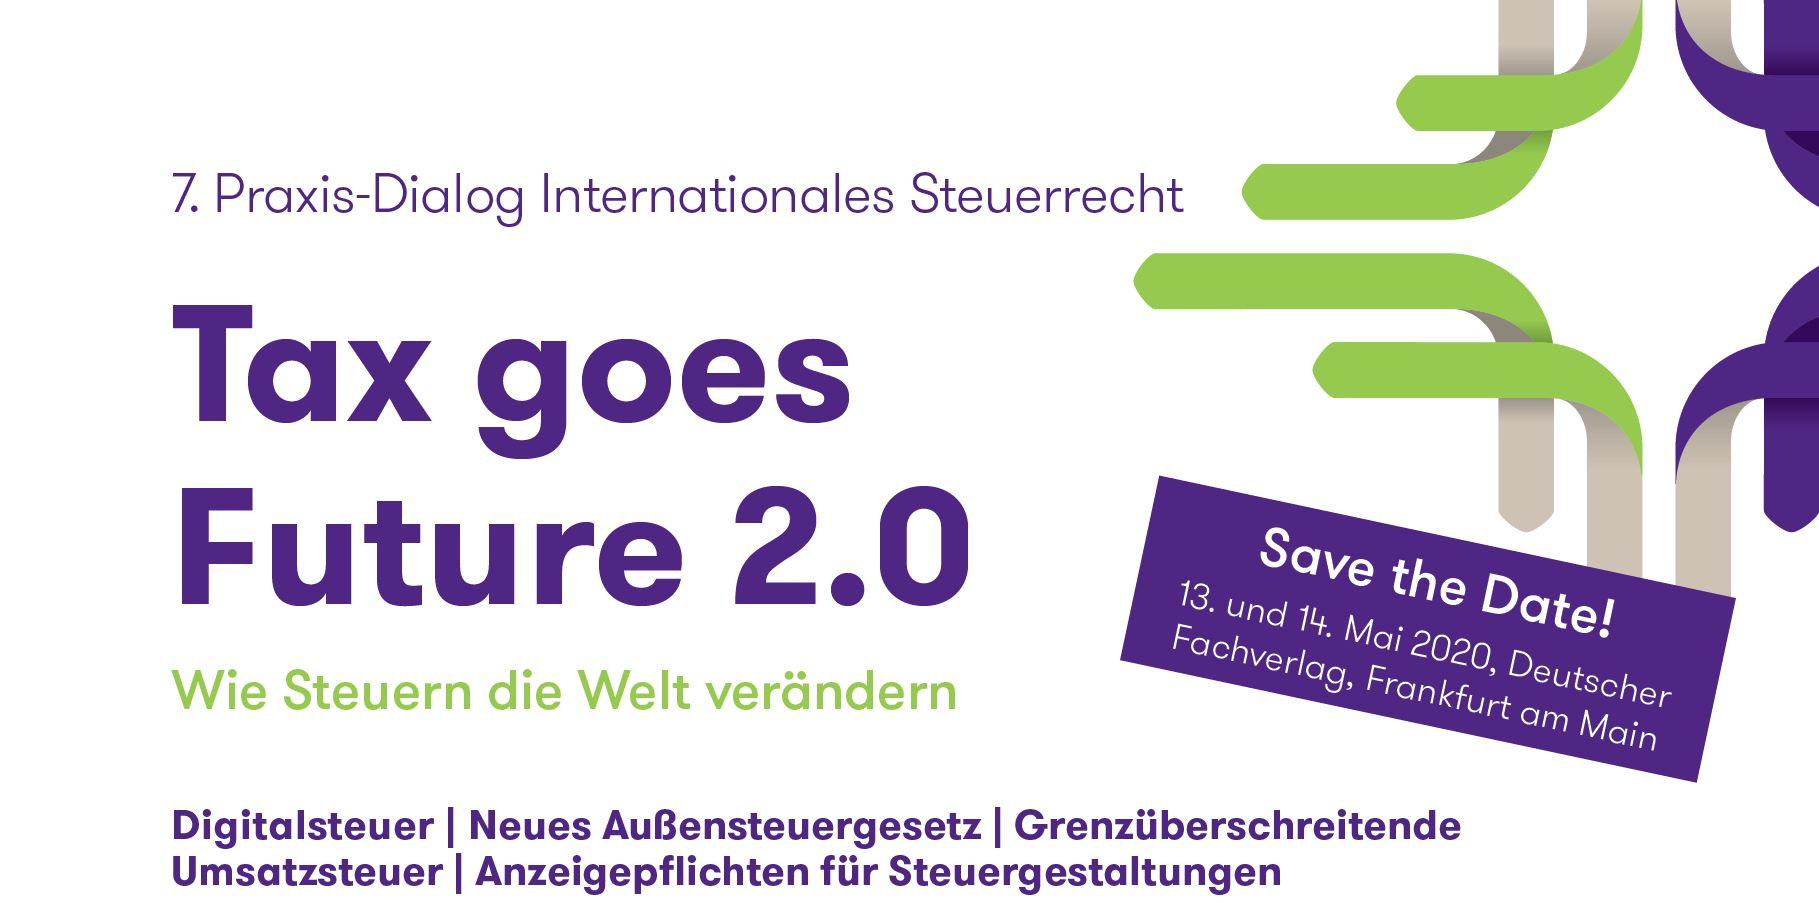 7. Praxis-Dialog Internationales Steuerrecht